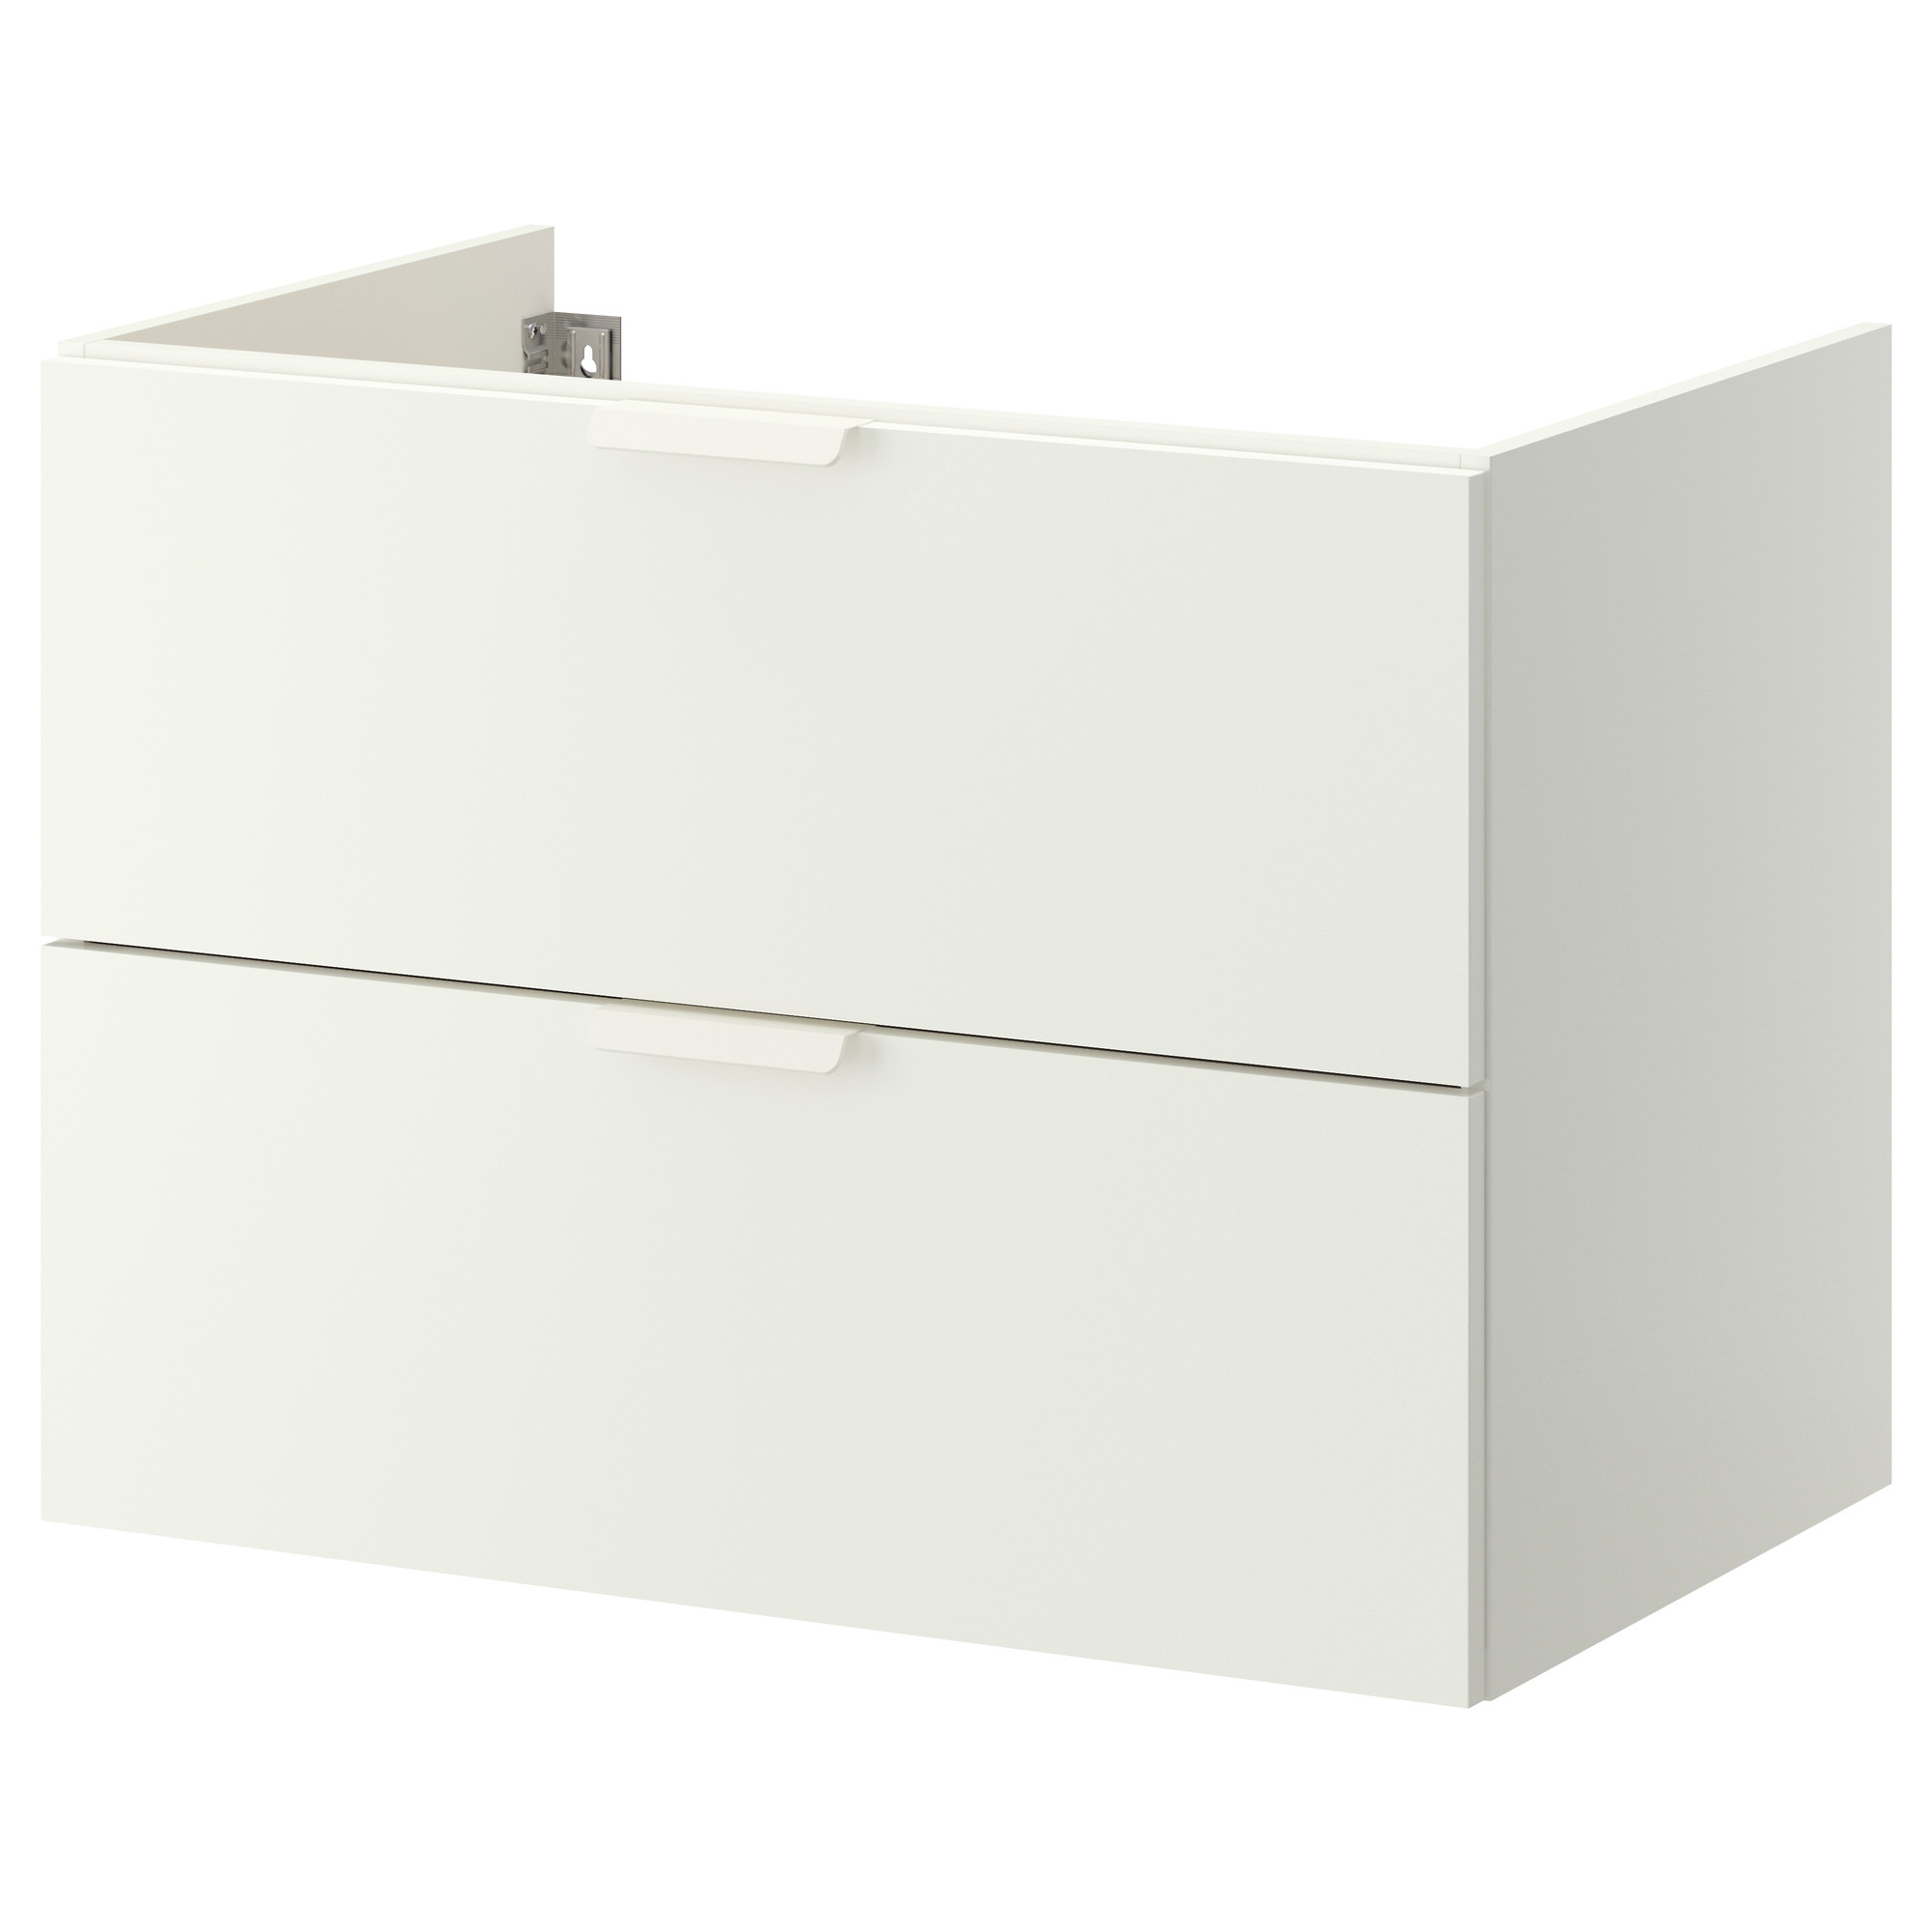 Kinderzimmer Ikea Erfahrung ~ GODMORGON wash stand with 2 drawers